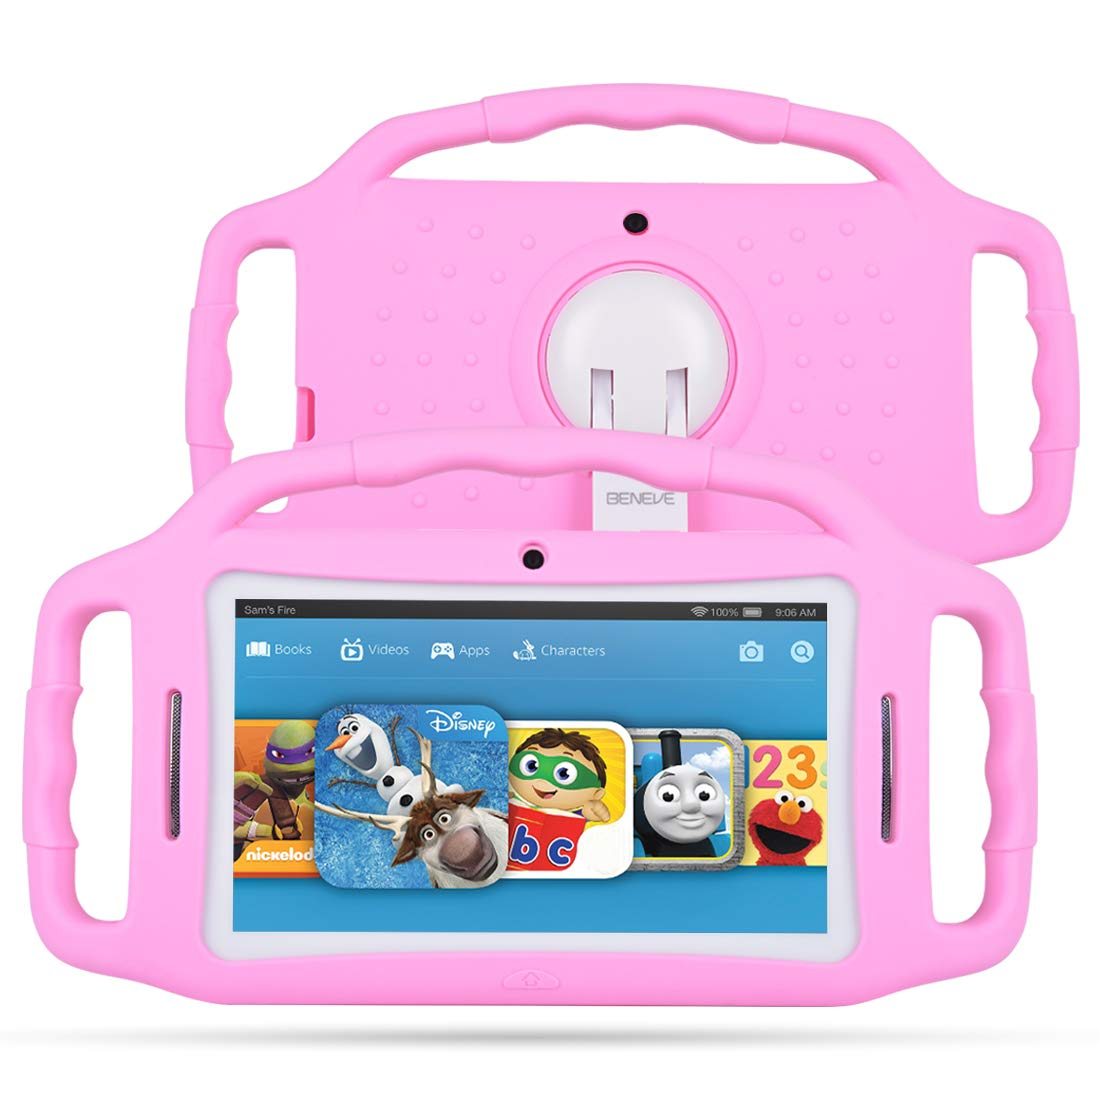 """M7133 Kids Tablets 7"""" Display, Android 7.1 Edition Tablet for Kids, 1GB +8GB Storage, iWawa Pre-Installed, Pink Kid-Proof Case (Pink)"""